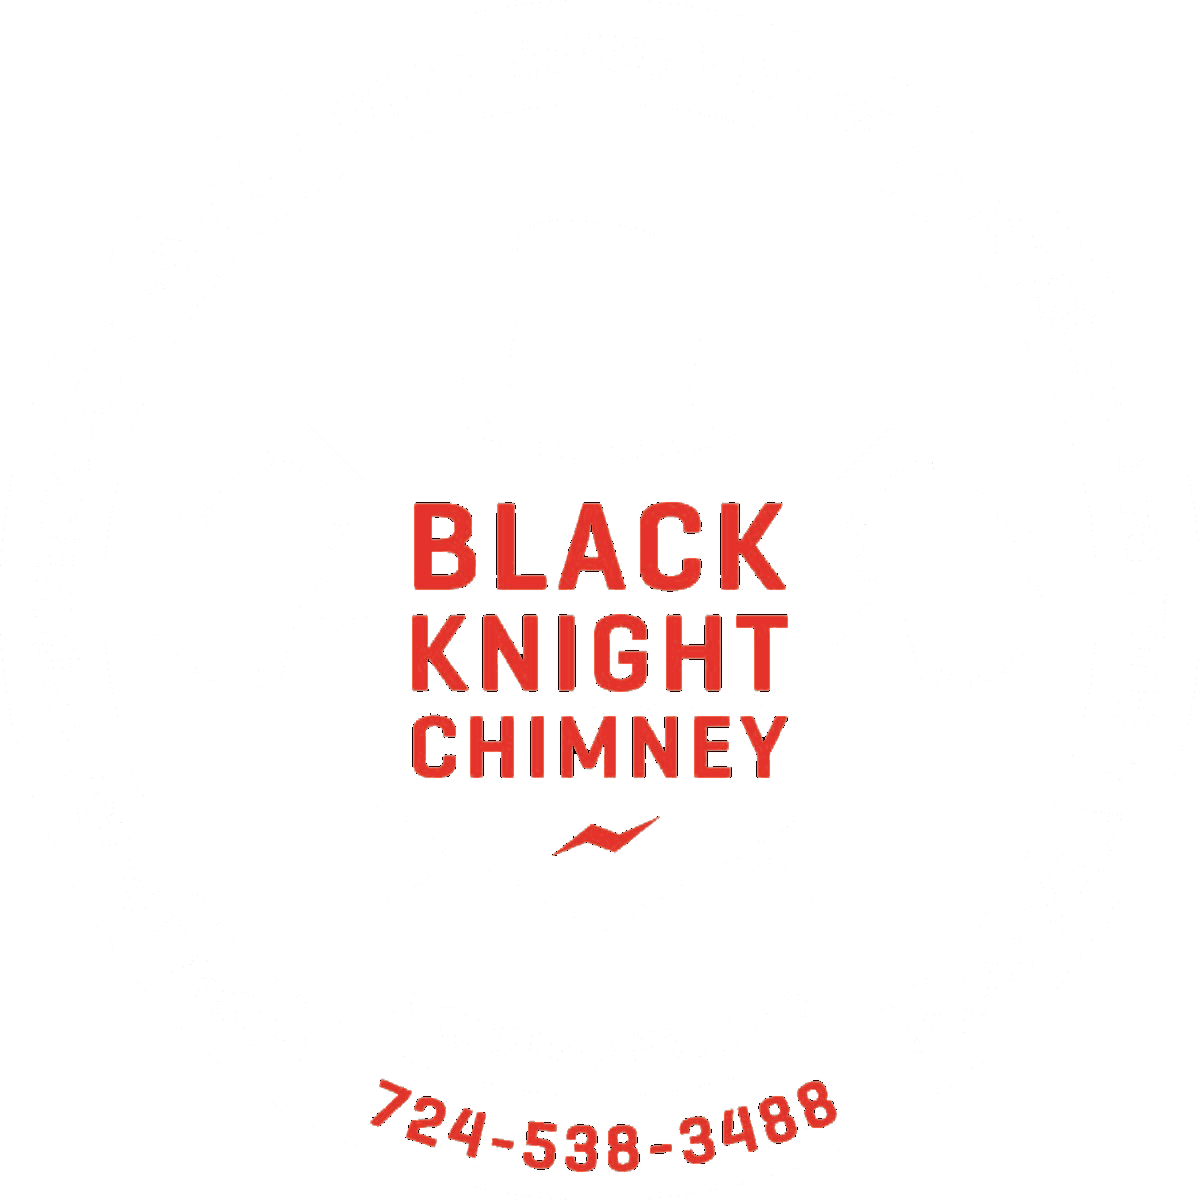 Black Knight Chimney